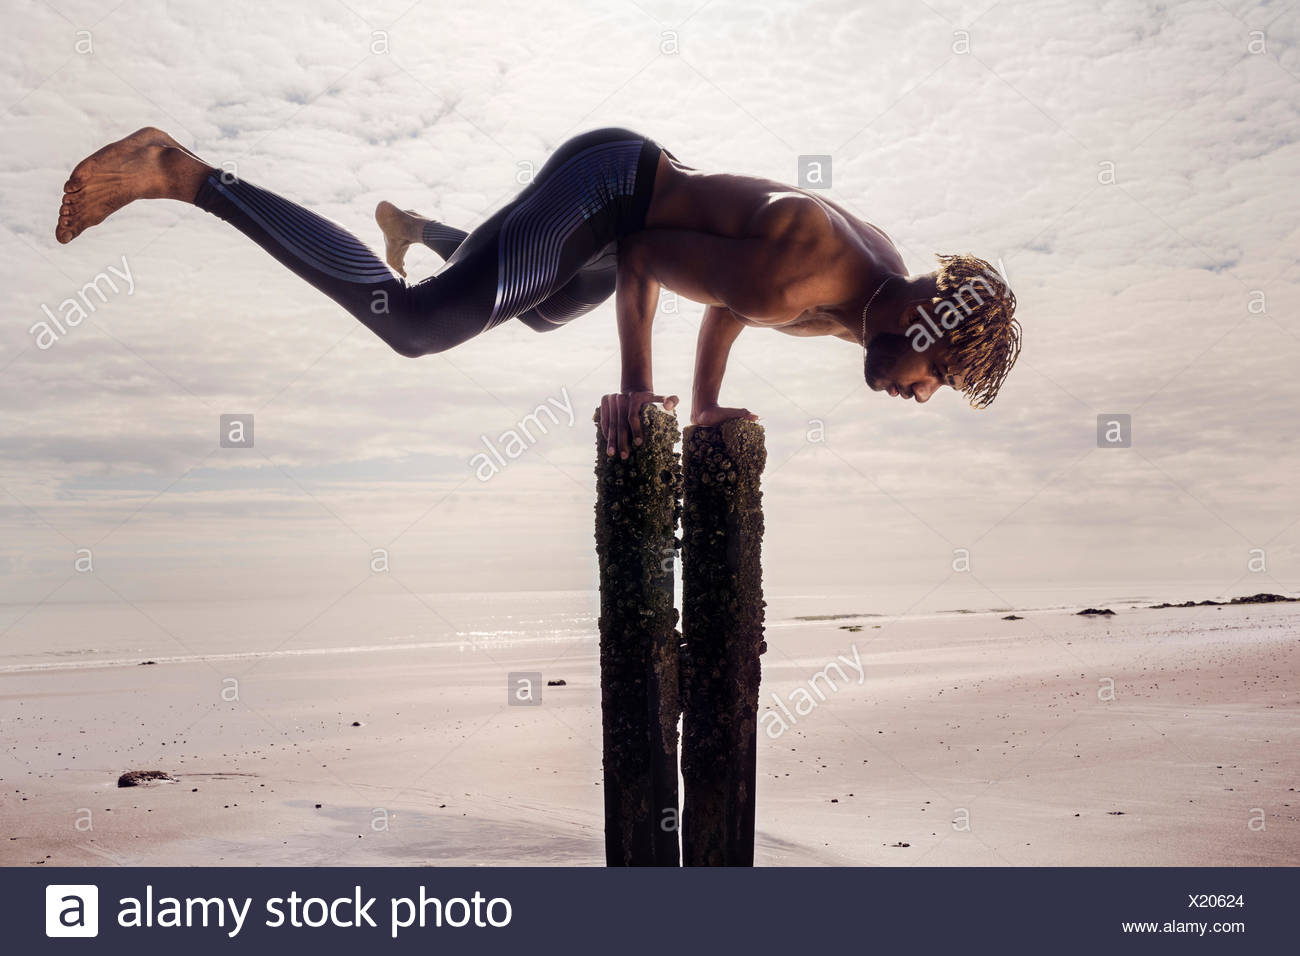 Young man training, doing handstand on wooden beach posts - Stock Image